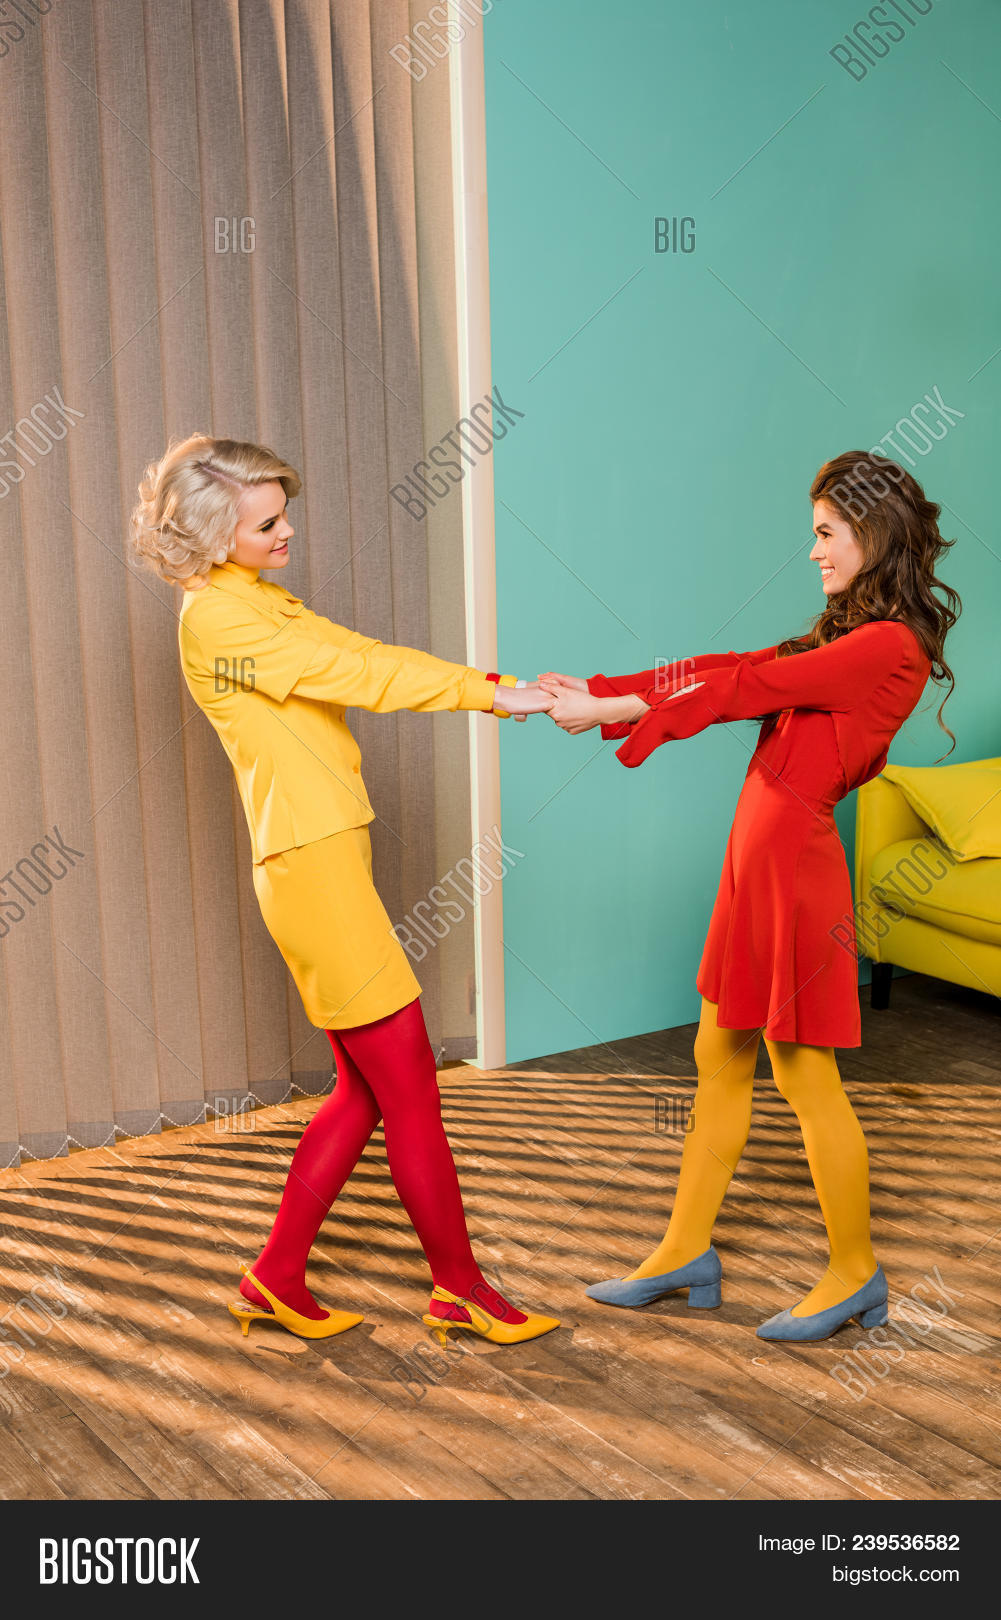 Side view of pretty smiling women in retro clothes holding hands at colorful apartment doll